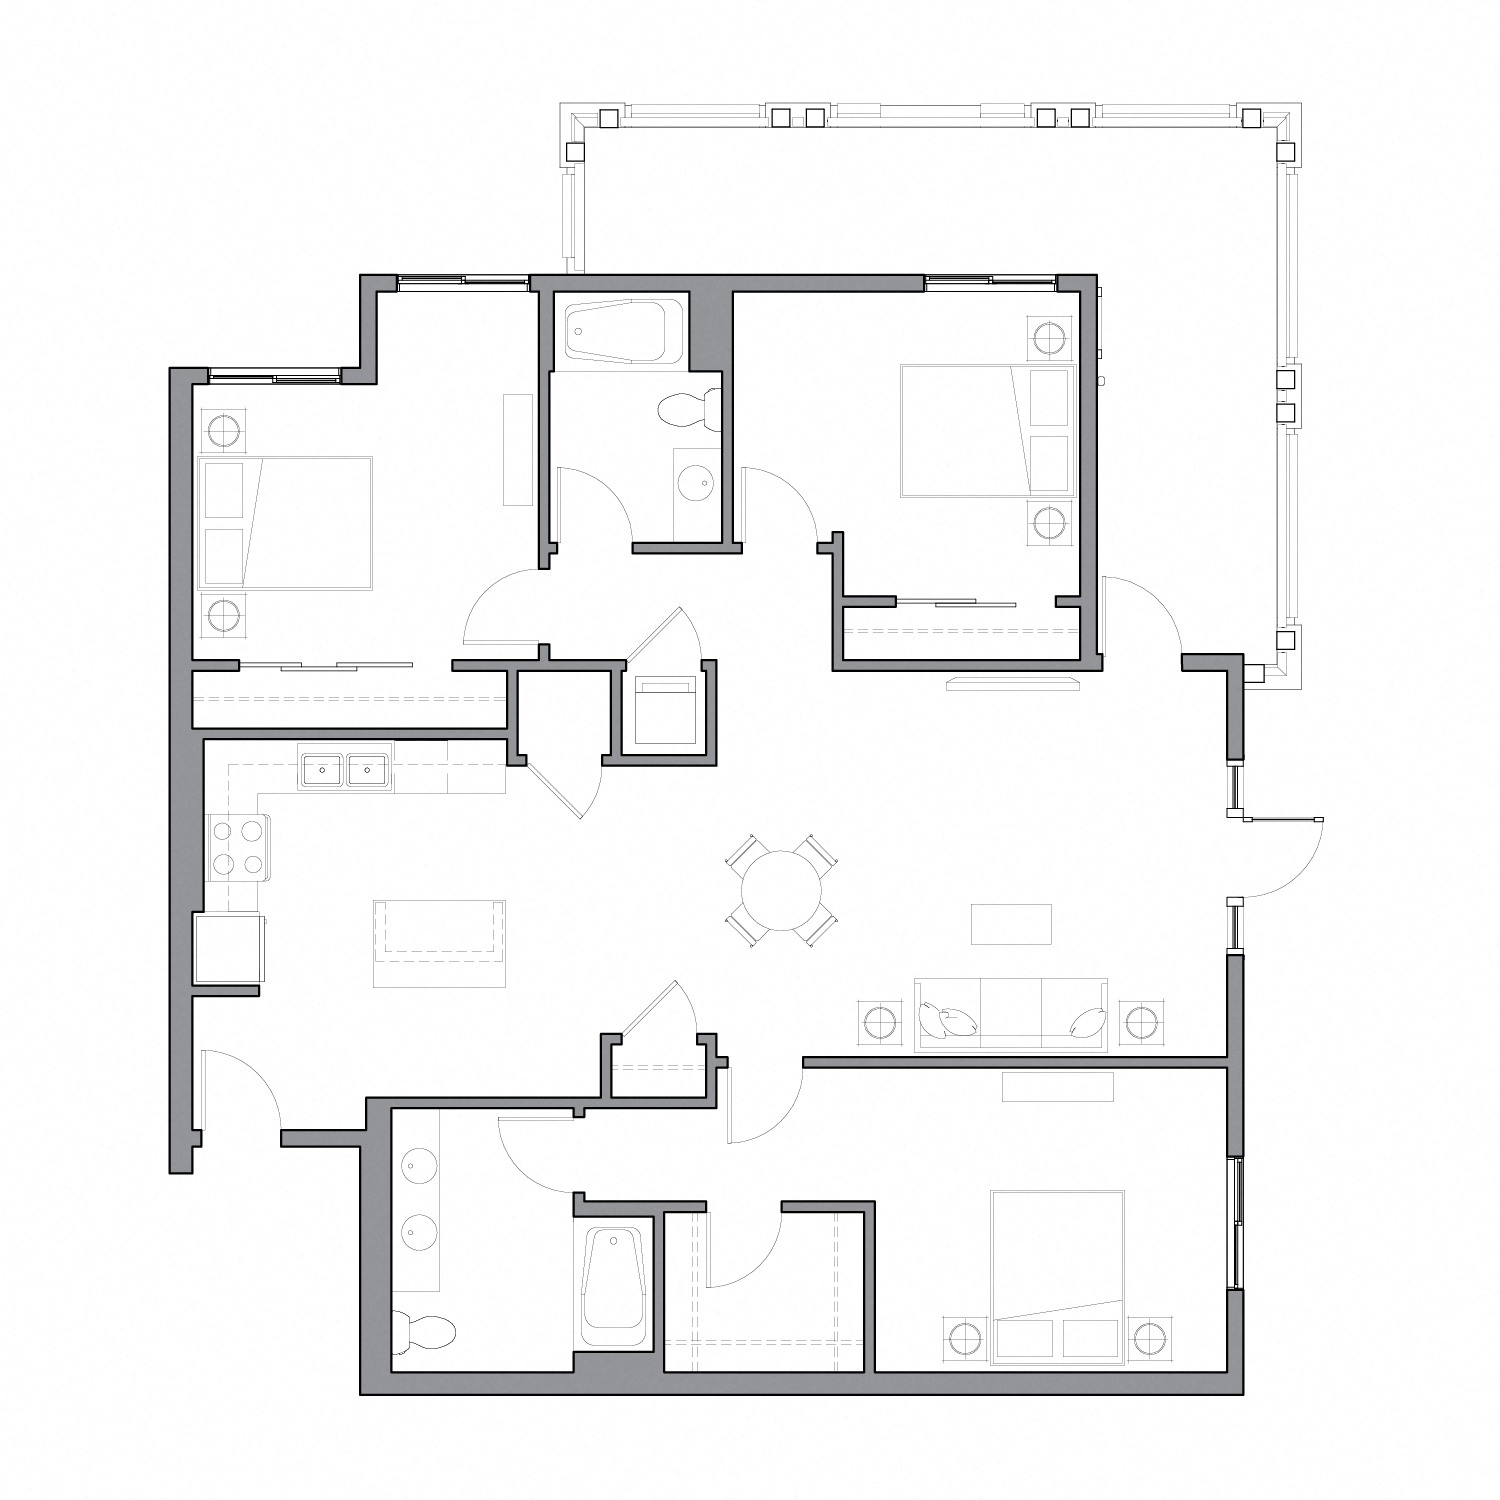 Floor plan diagram with three bedrooms, two bathrooms, an open kitchen dining and living space, and a large patio